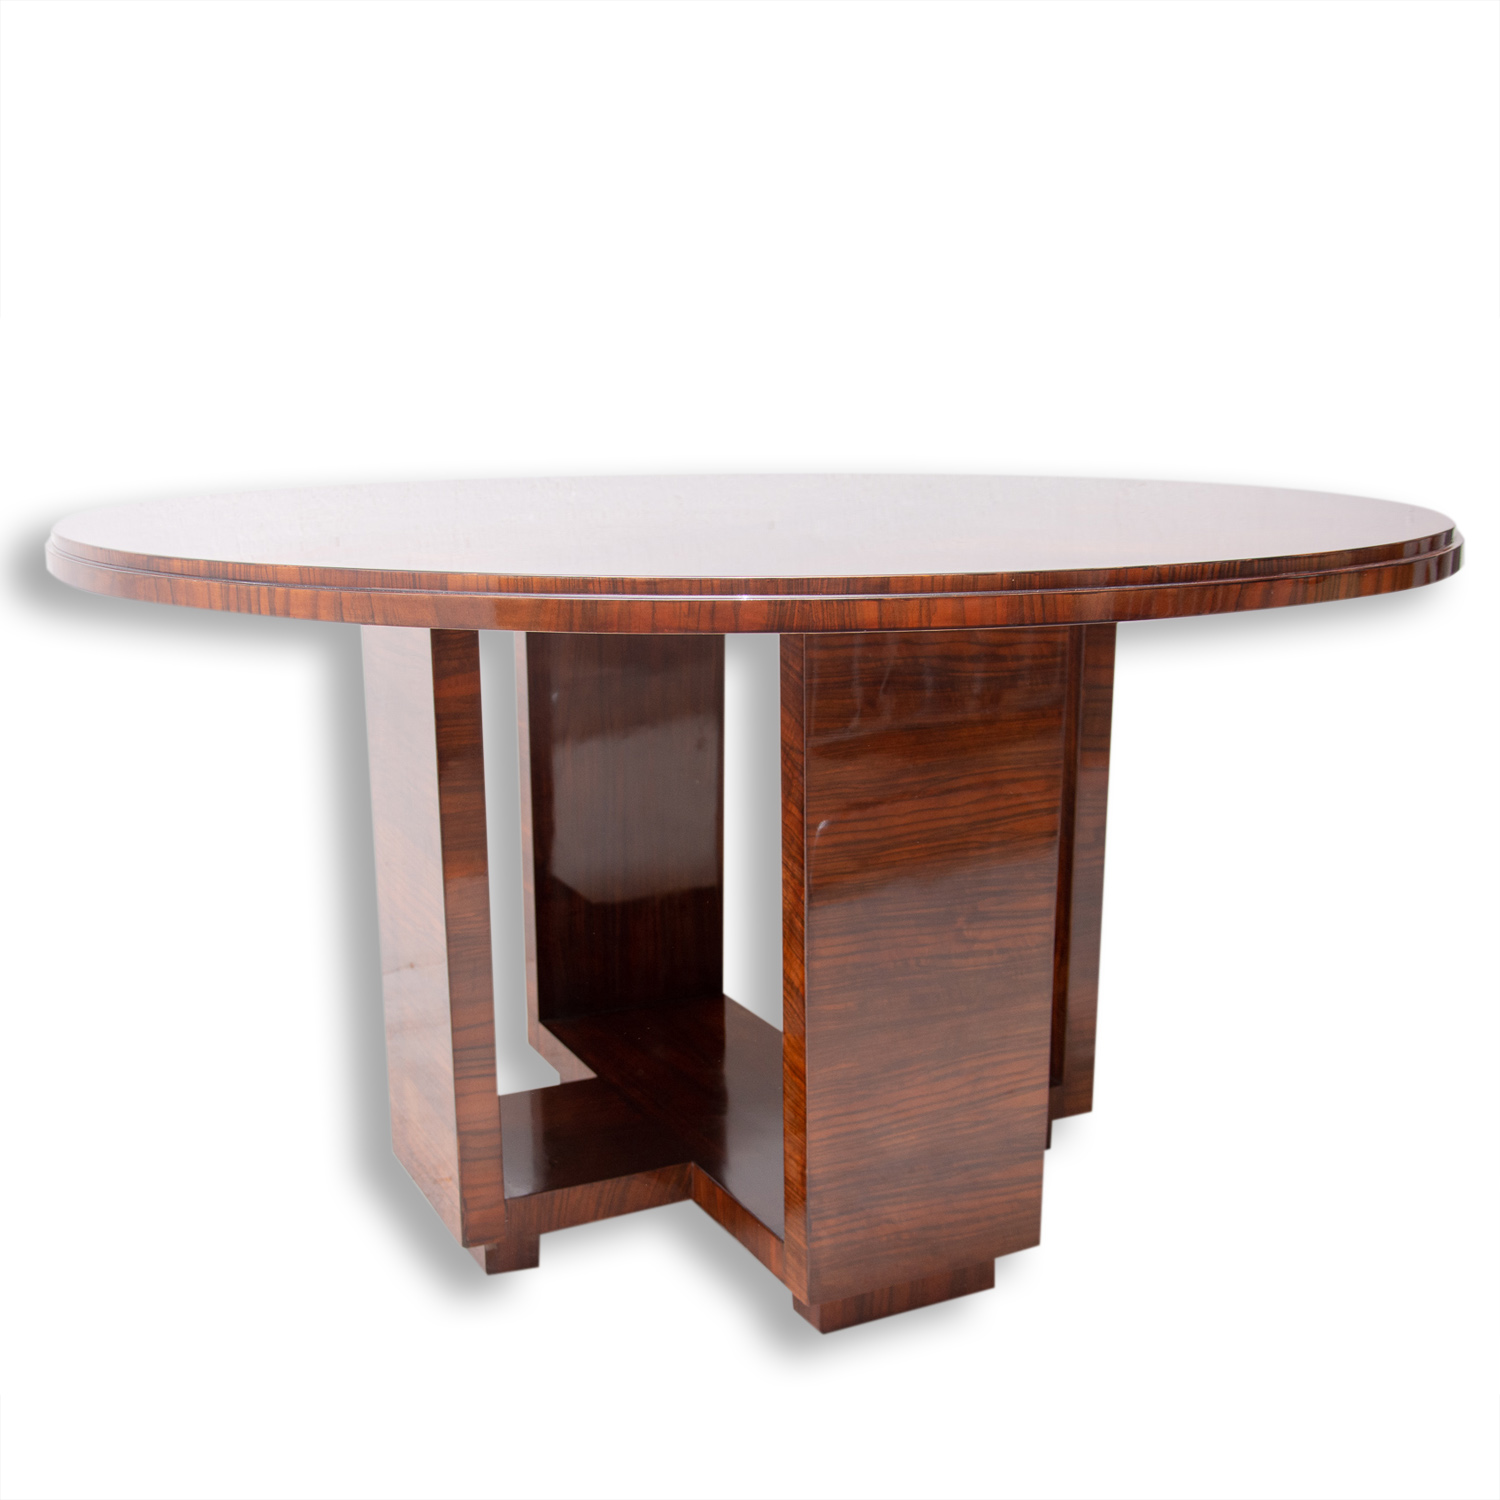 03ba438e224a Art Deco Round Dining Table in Walnut by Vlastimil Brozek, 1930s ...